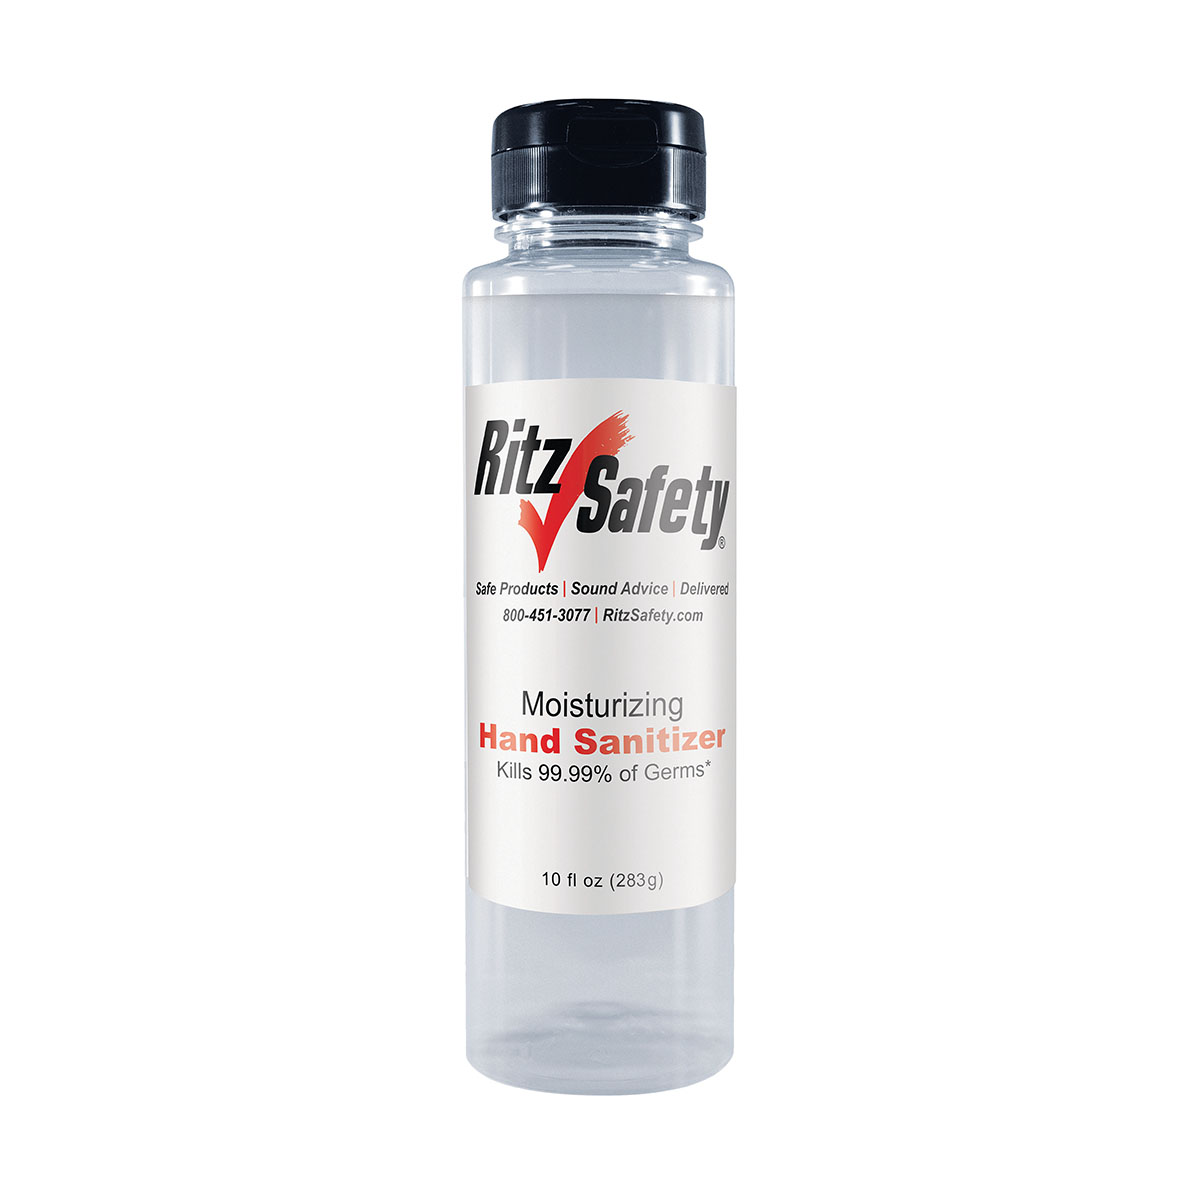 RTZHANDSAN10OZ - Hand Sanitizer Front of Bottle